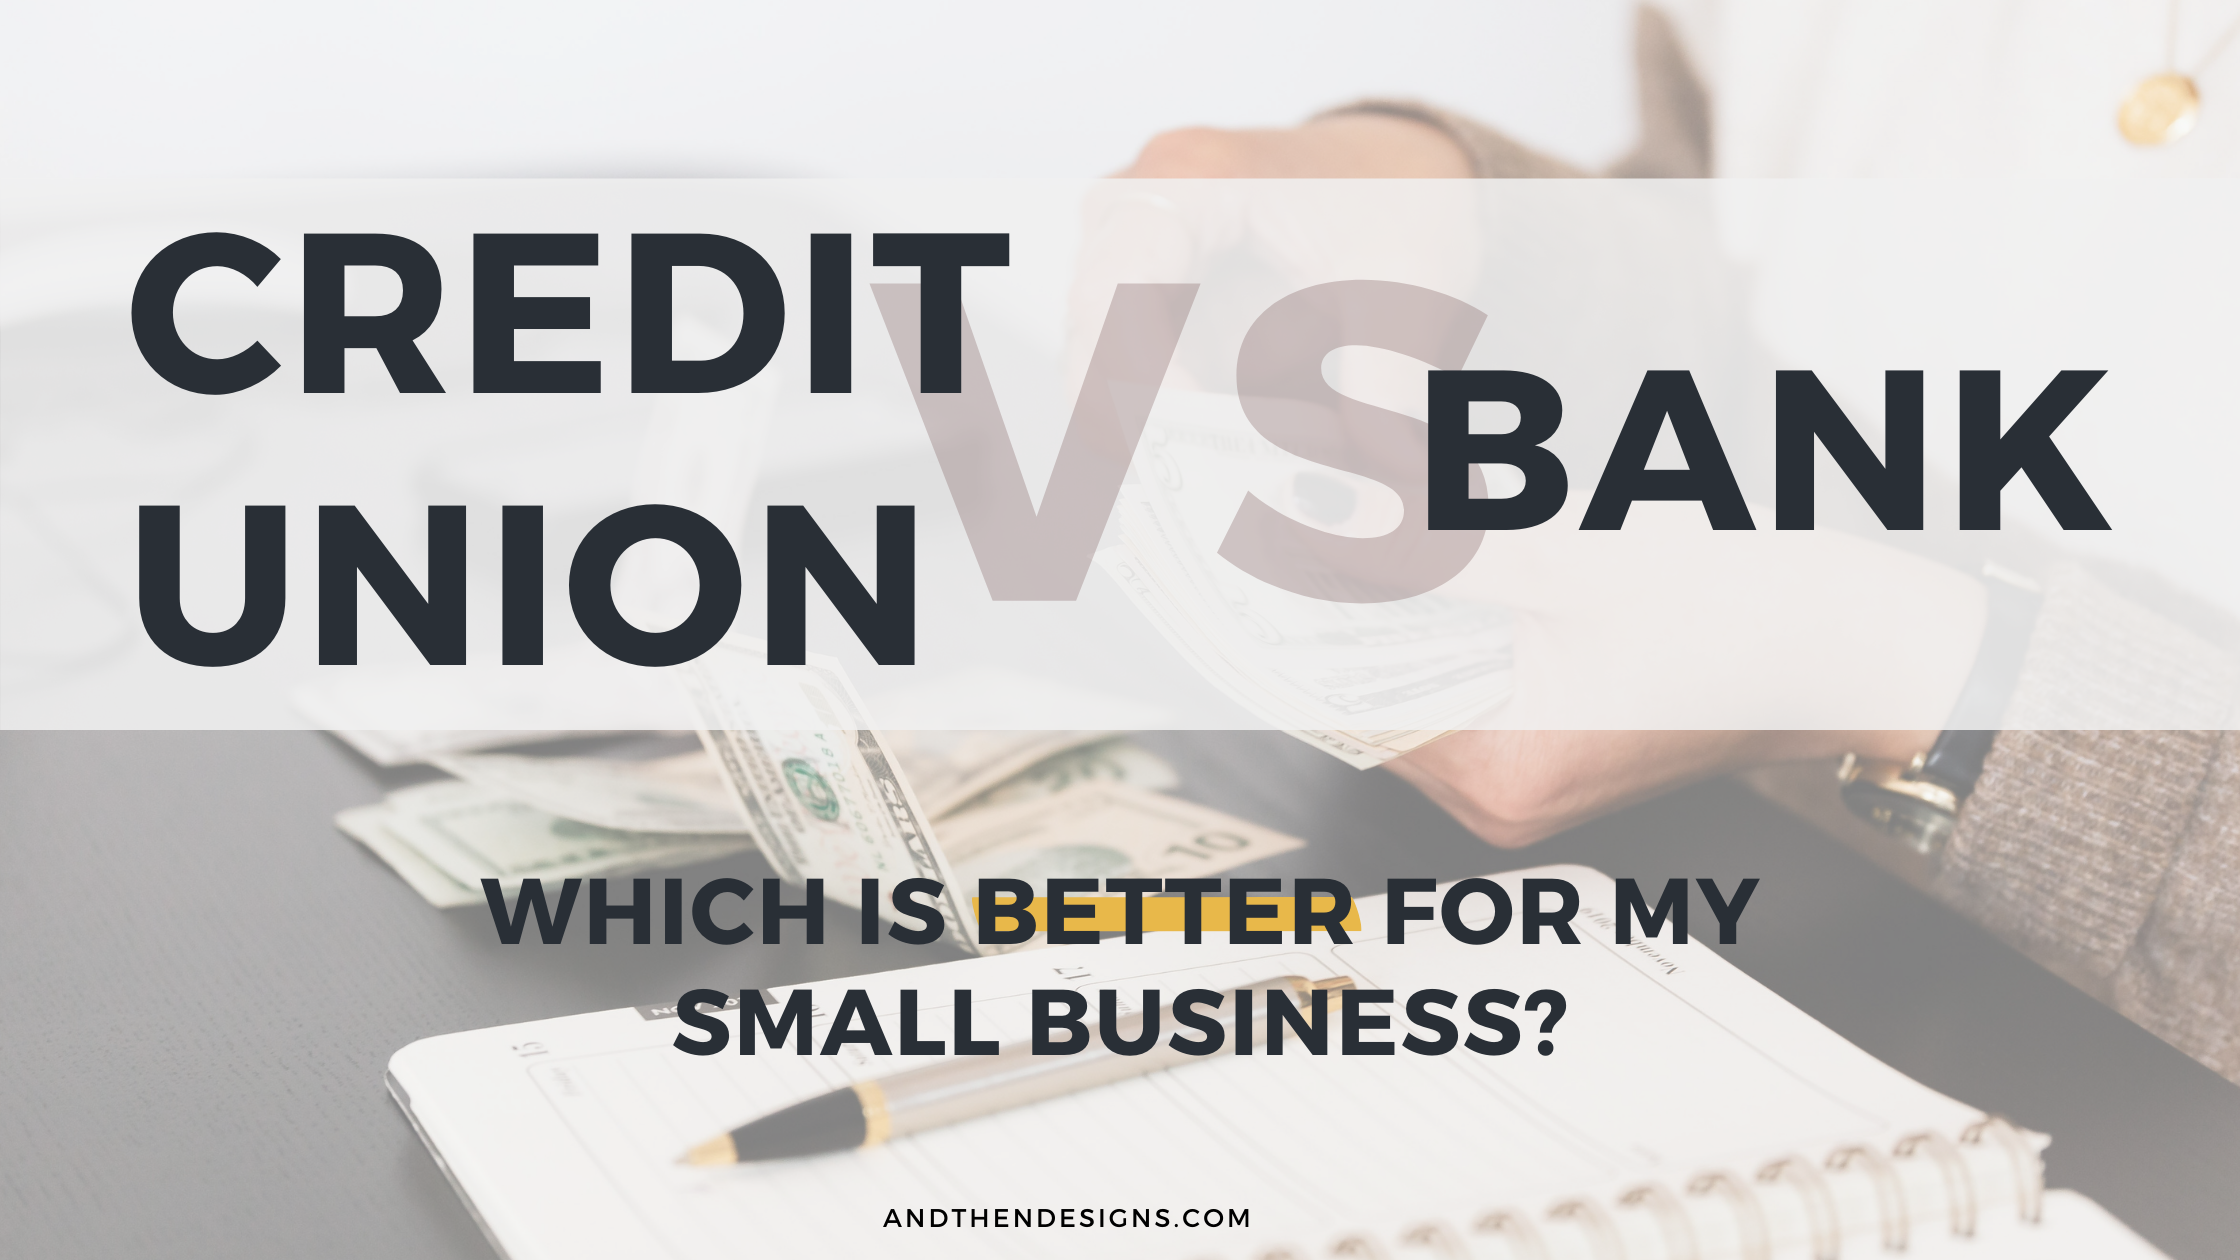 Credit Union vs Bank: Which is Better for My Small Business?